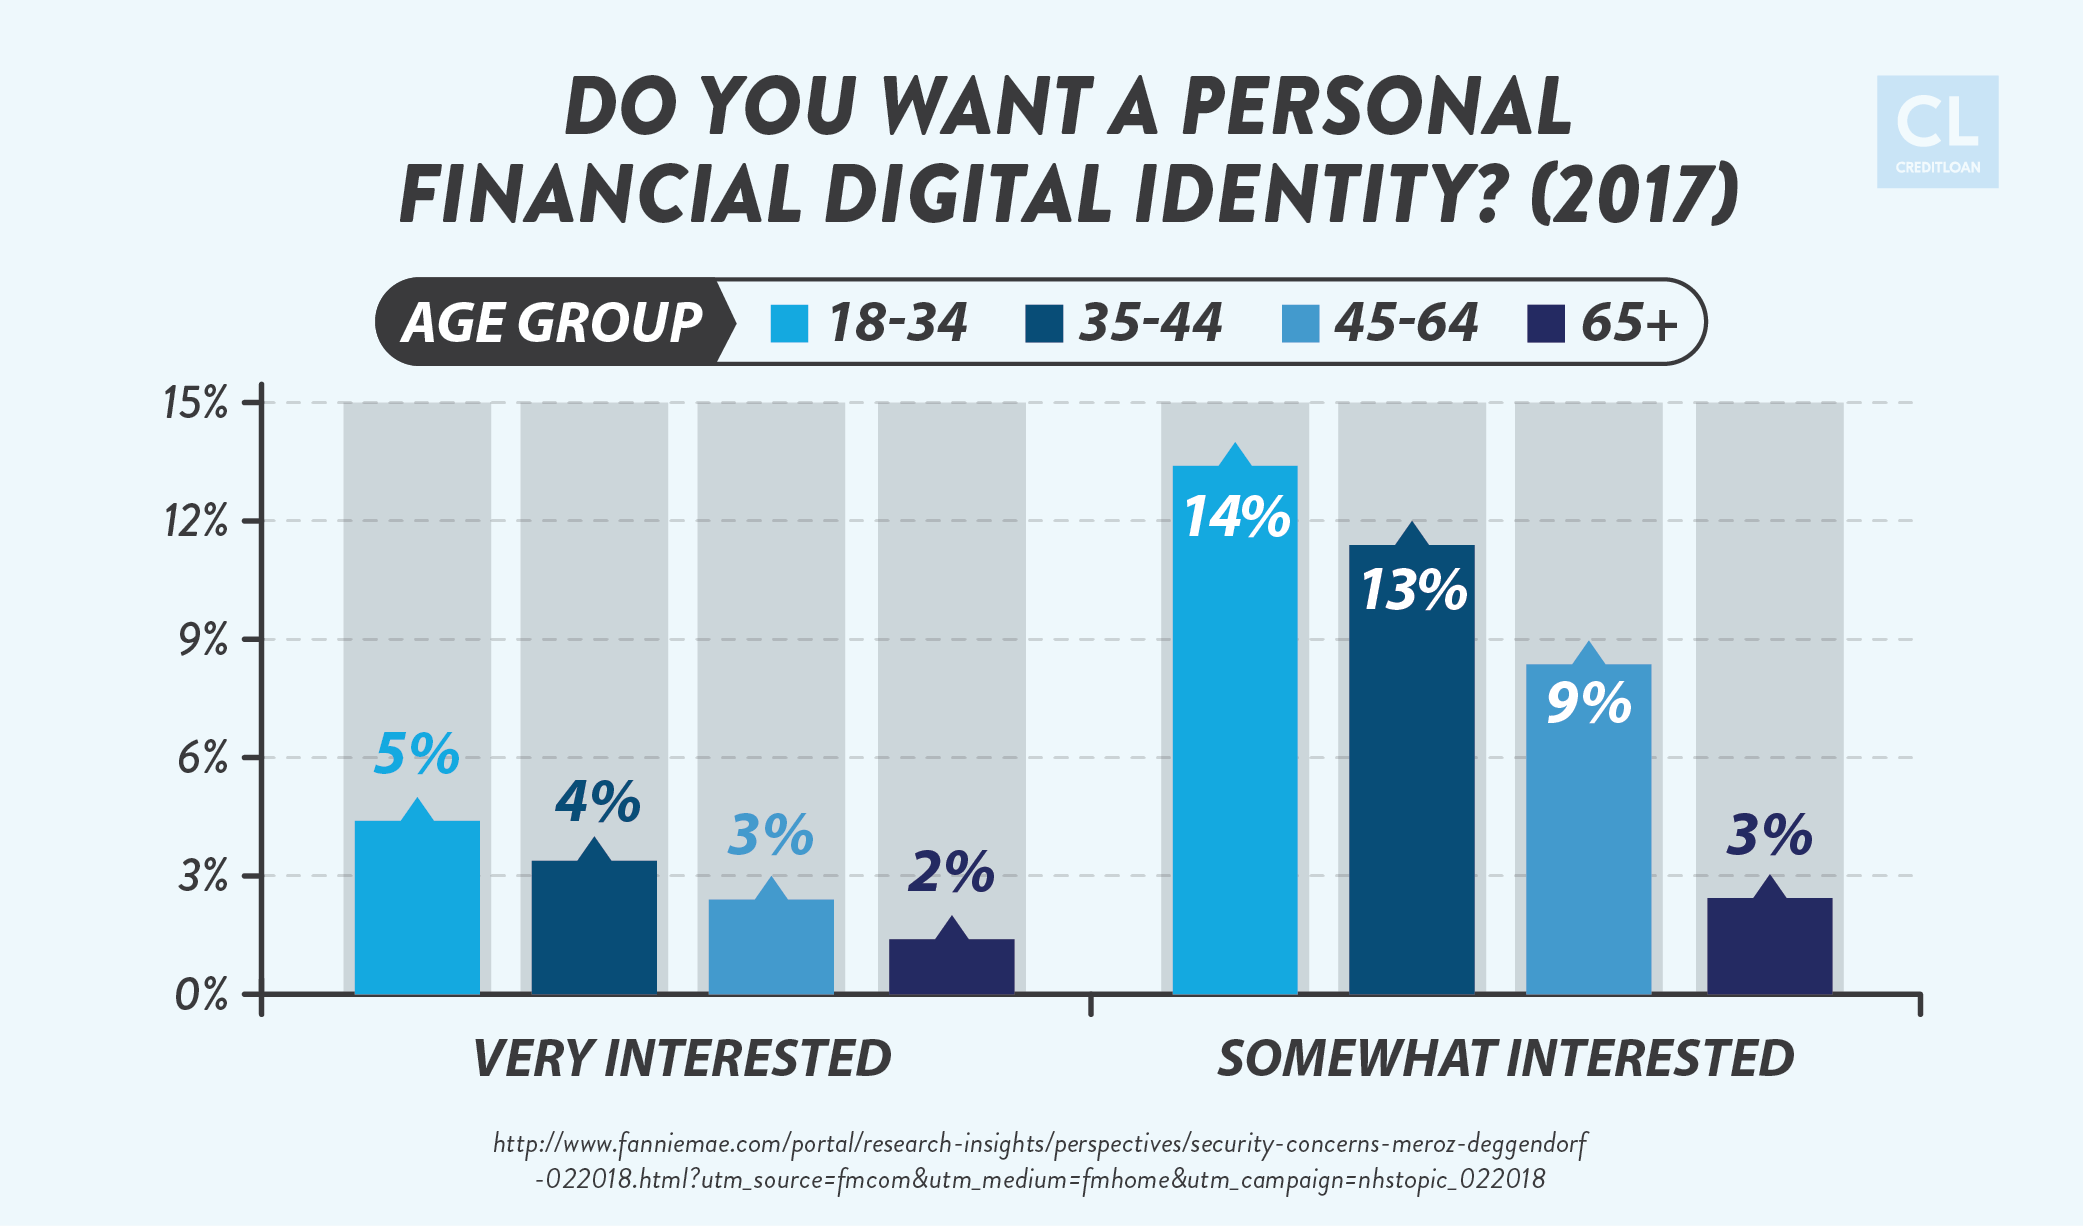 Survey Result: Do You Want a Personal Financial DIgital Identity?